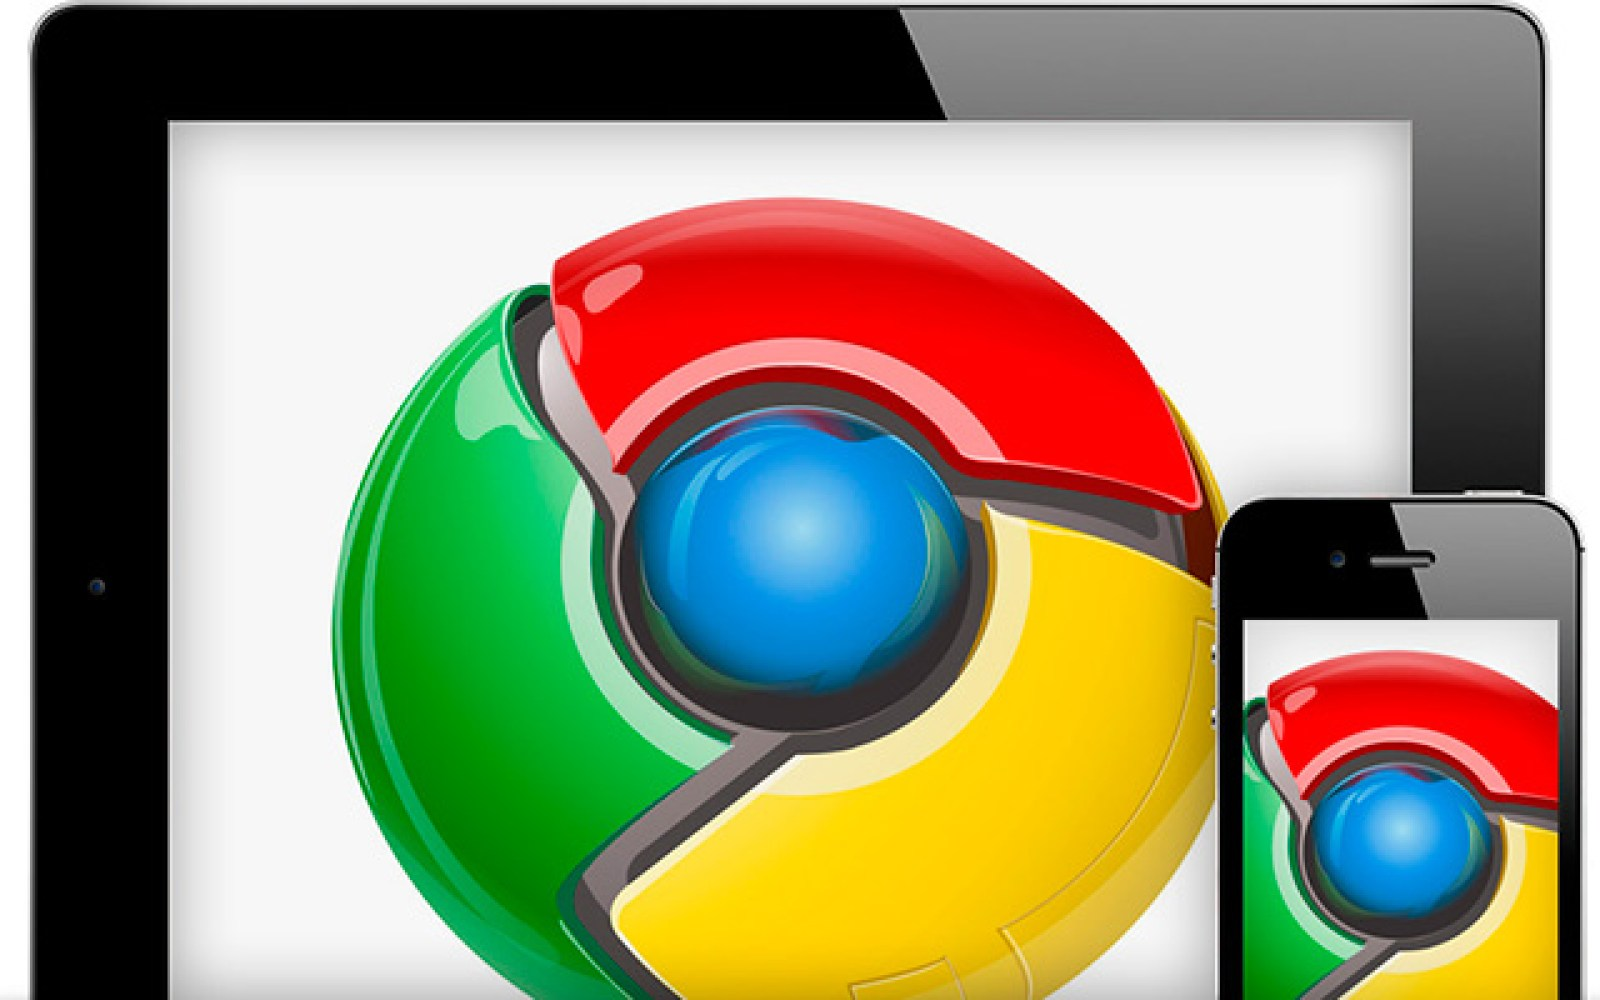 Chrome for iOS gets updated scroll, AirPrint/Cloud Print and save PDF to Google Drive options